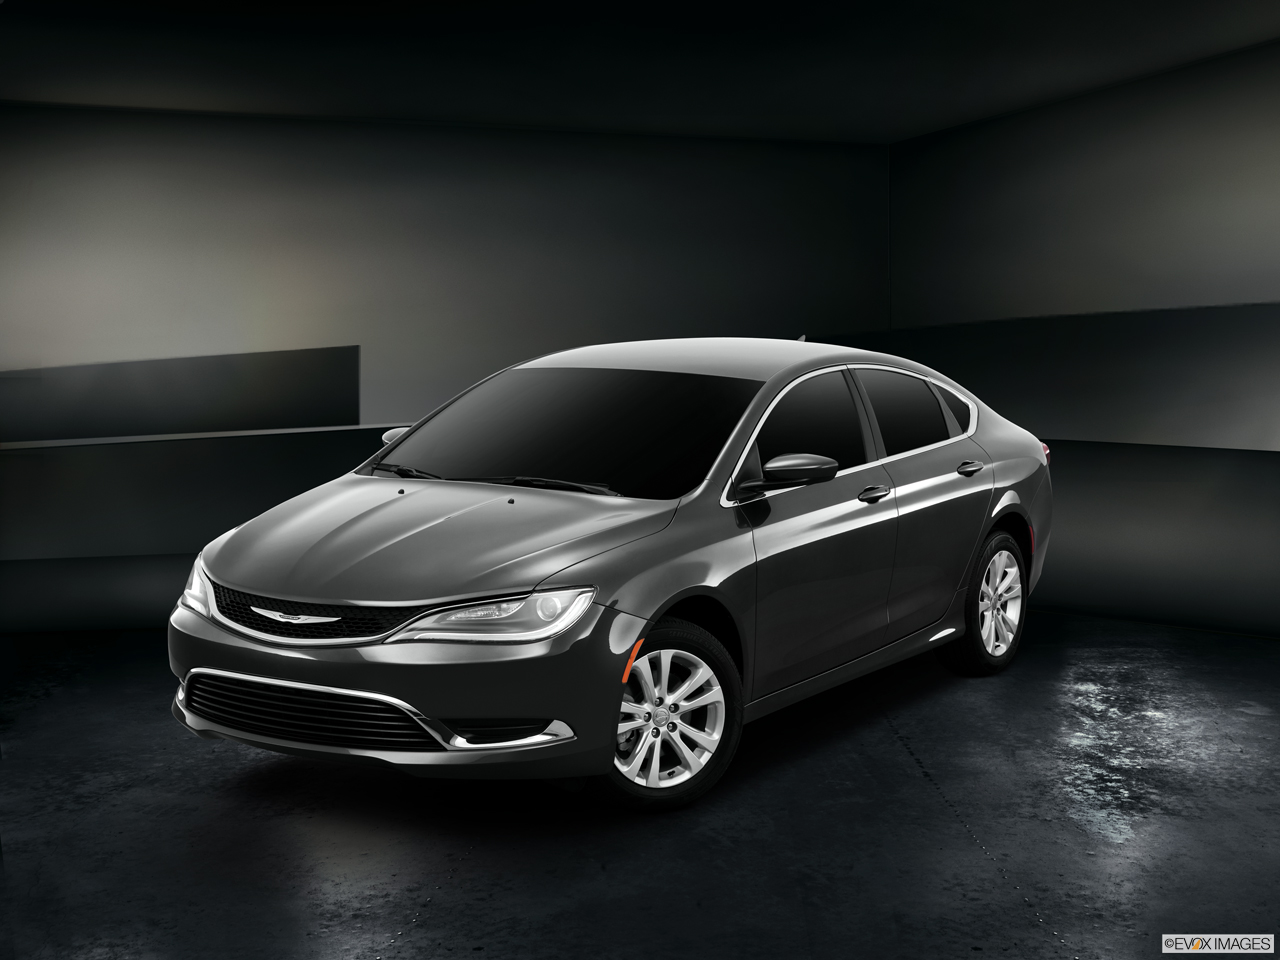 Exterior View Of 2016 Chrysler 200 Chicago